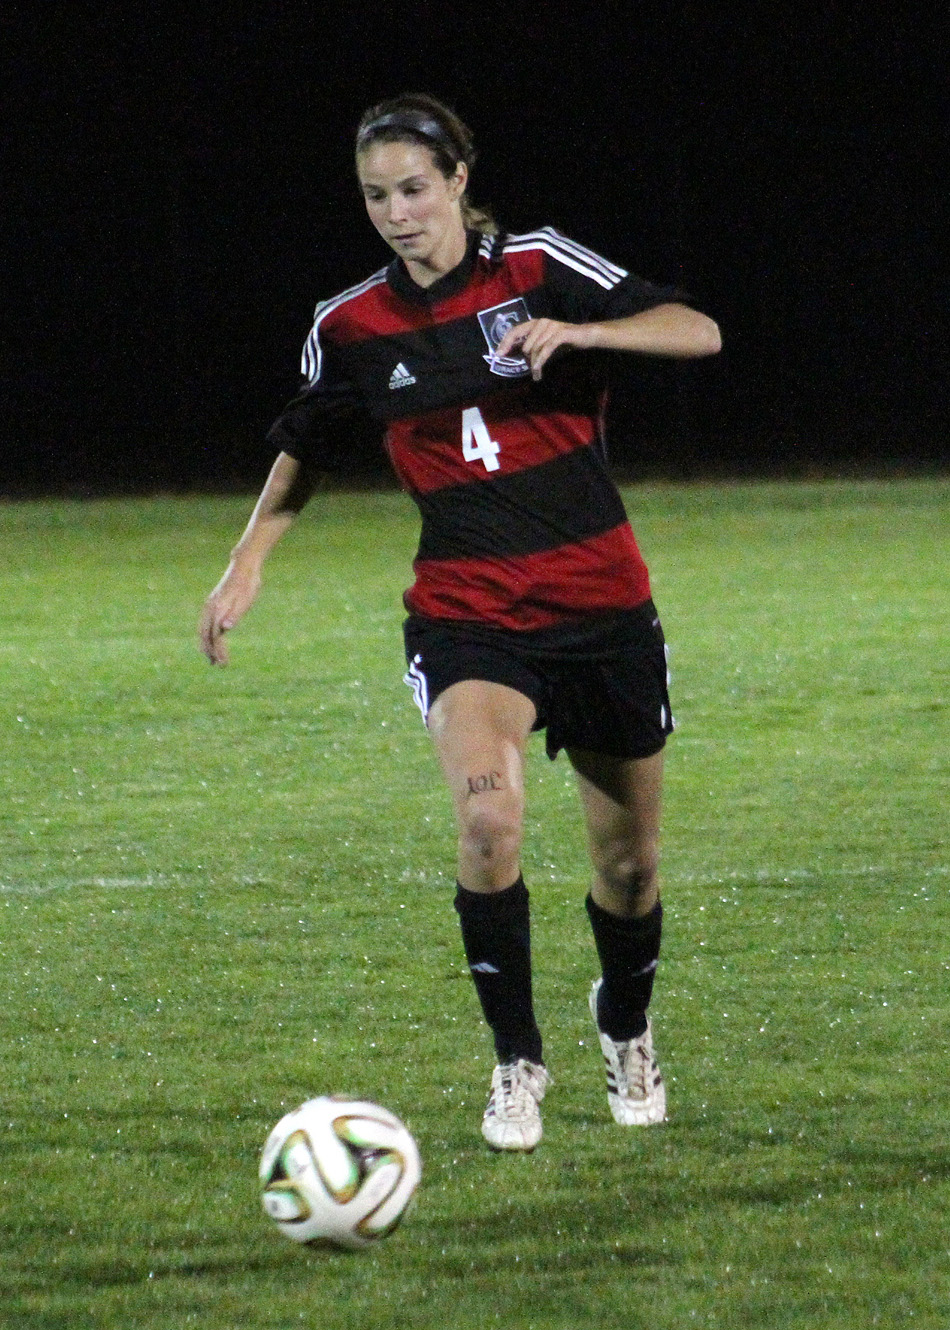 Grace College forward Mallory Rondeau netted a hat trick to help Grace beat Goshen Tuesday night. (File photo provided by the Grace College Sports Information Department)